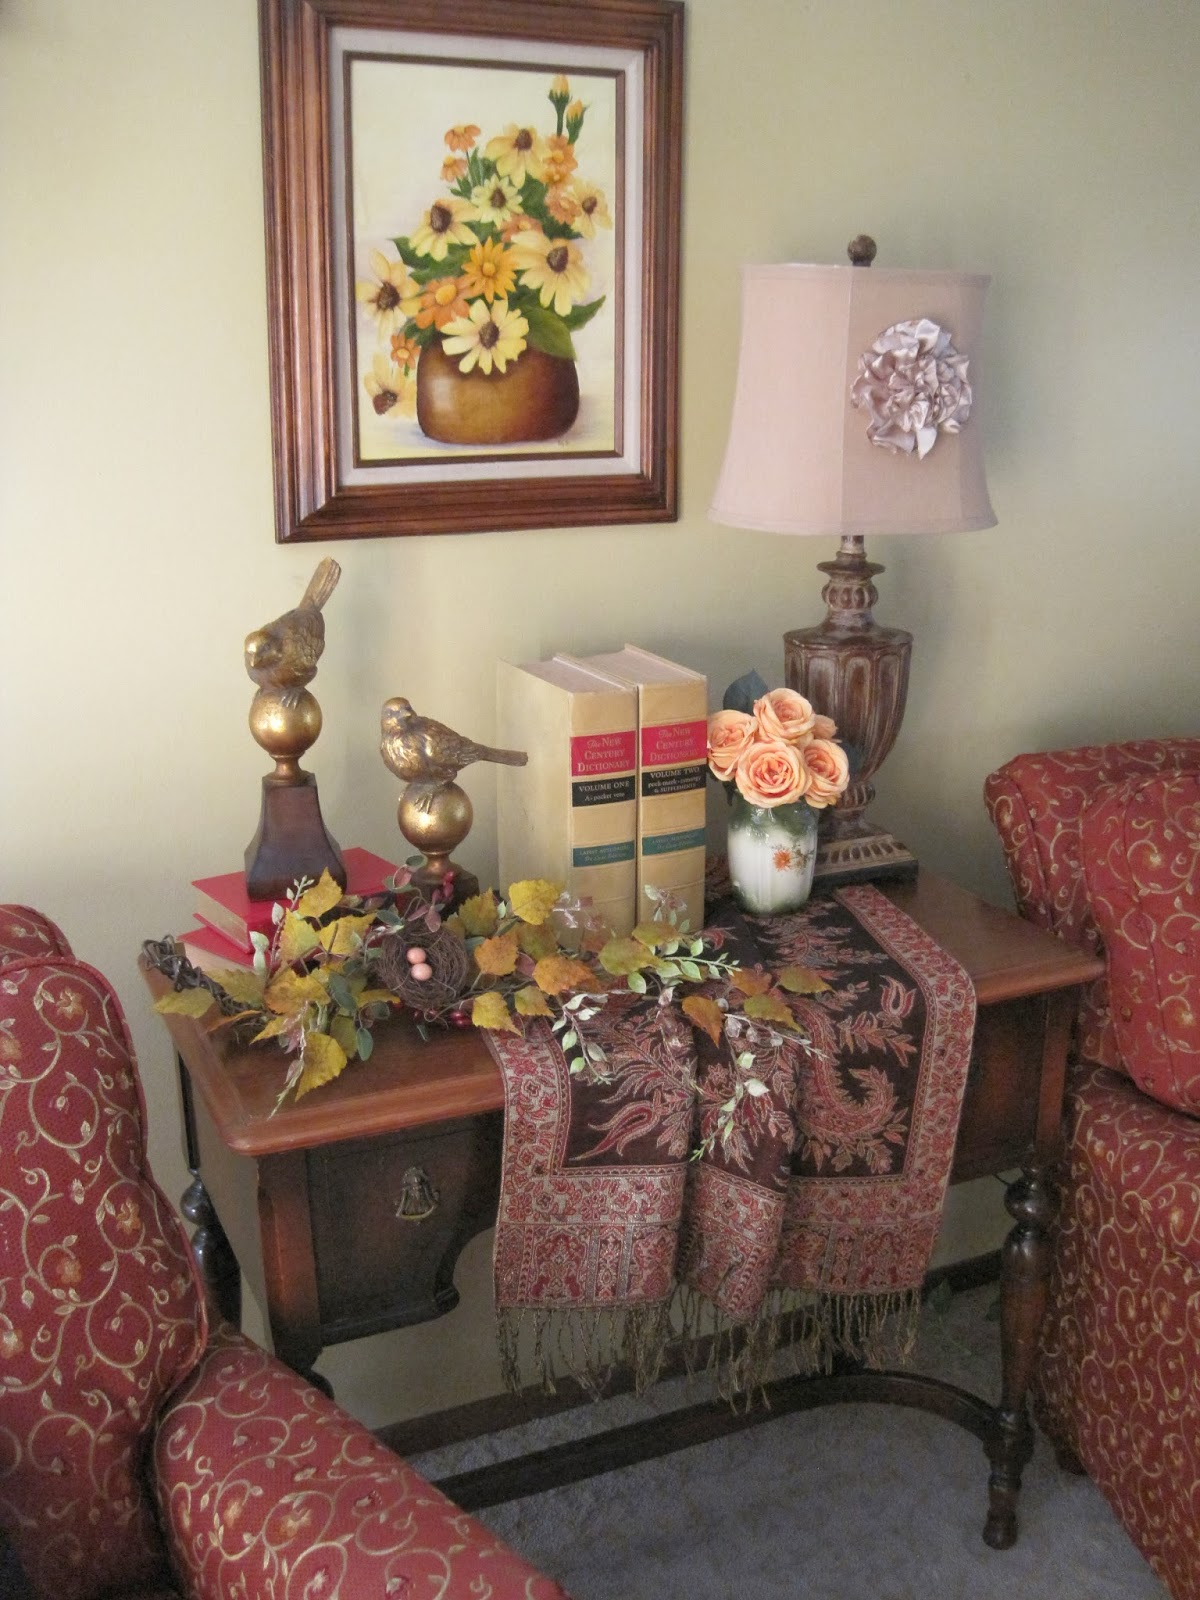 Amazing Living Room Cabinet Designs Antique Showcase Using: On Crooked Creektt: All Nature Sings